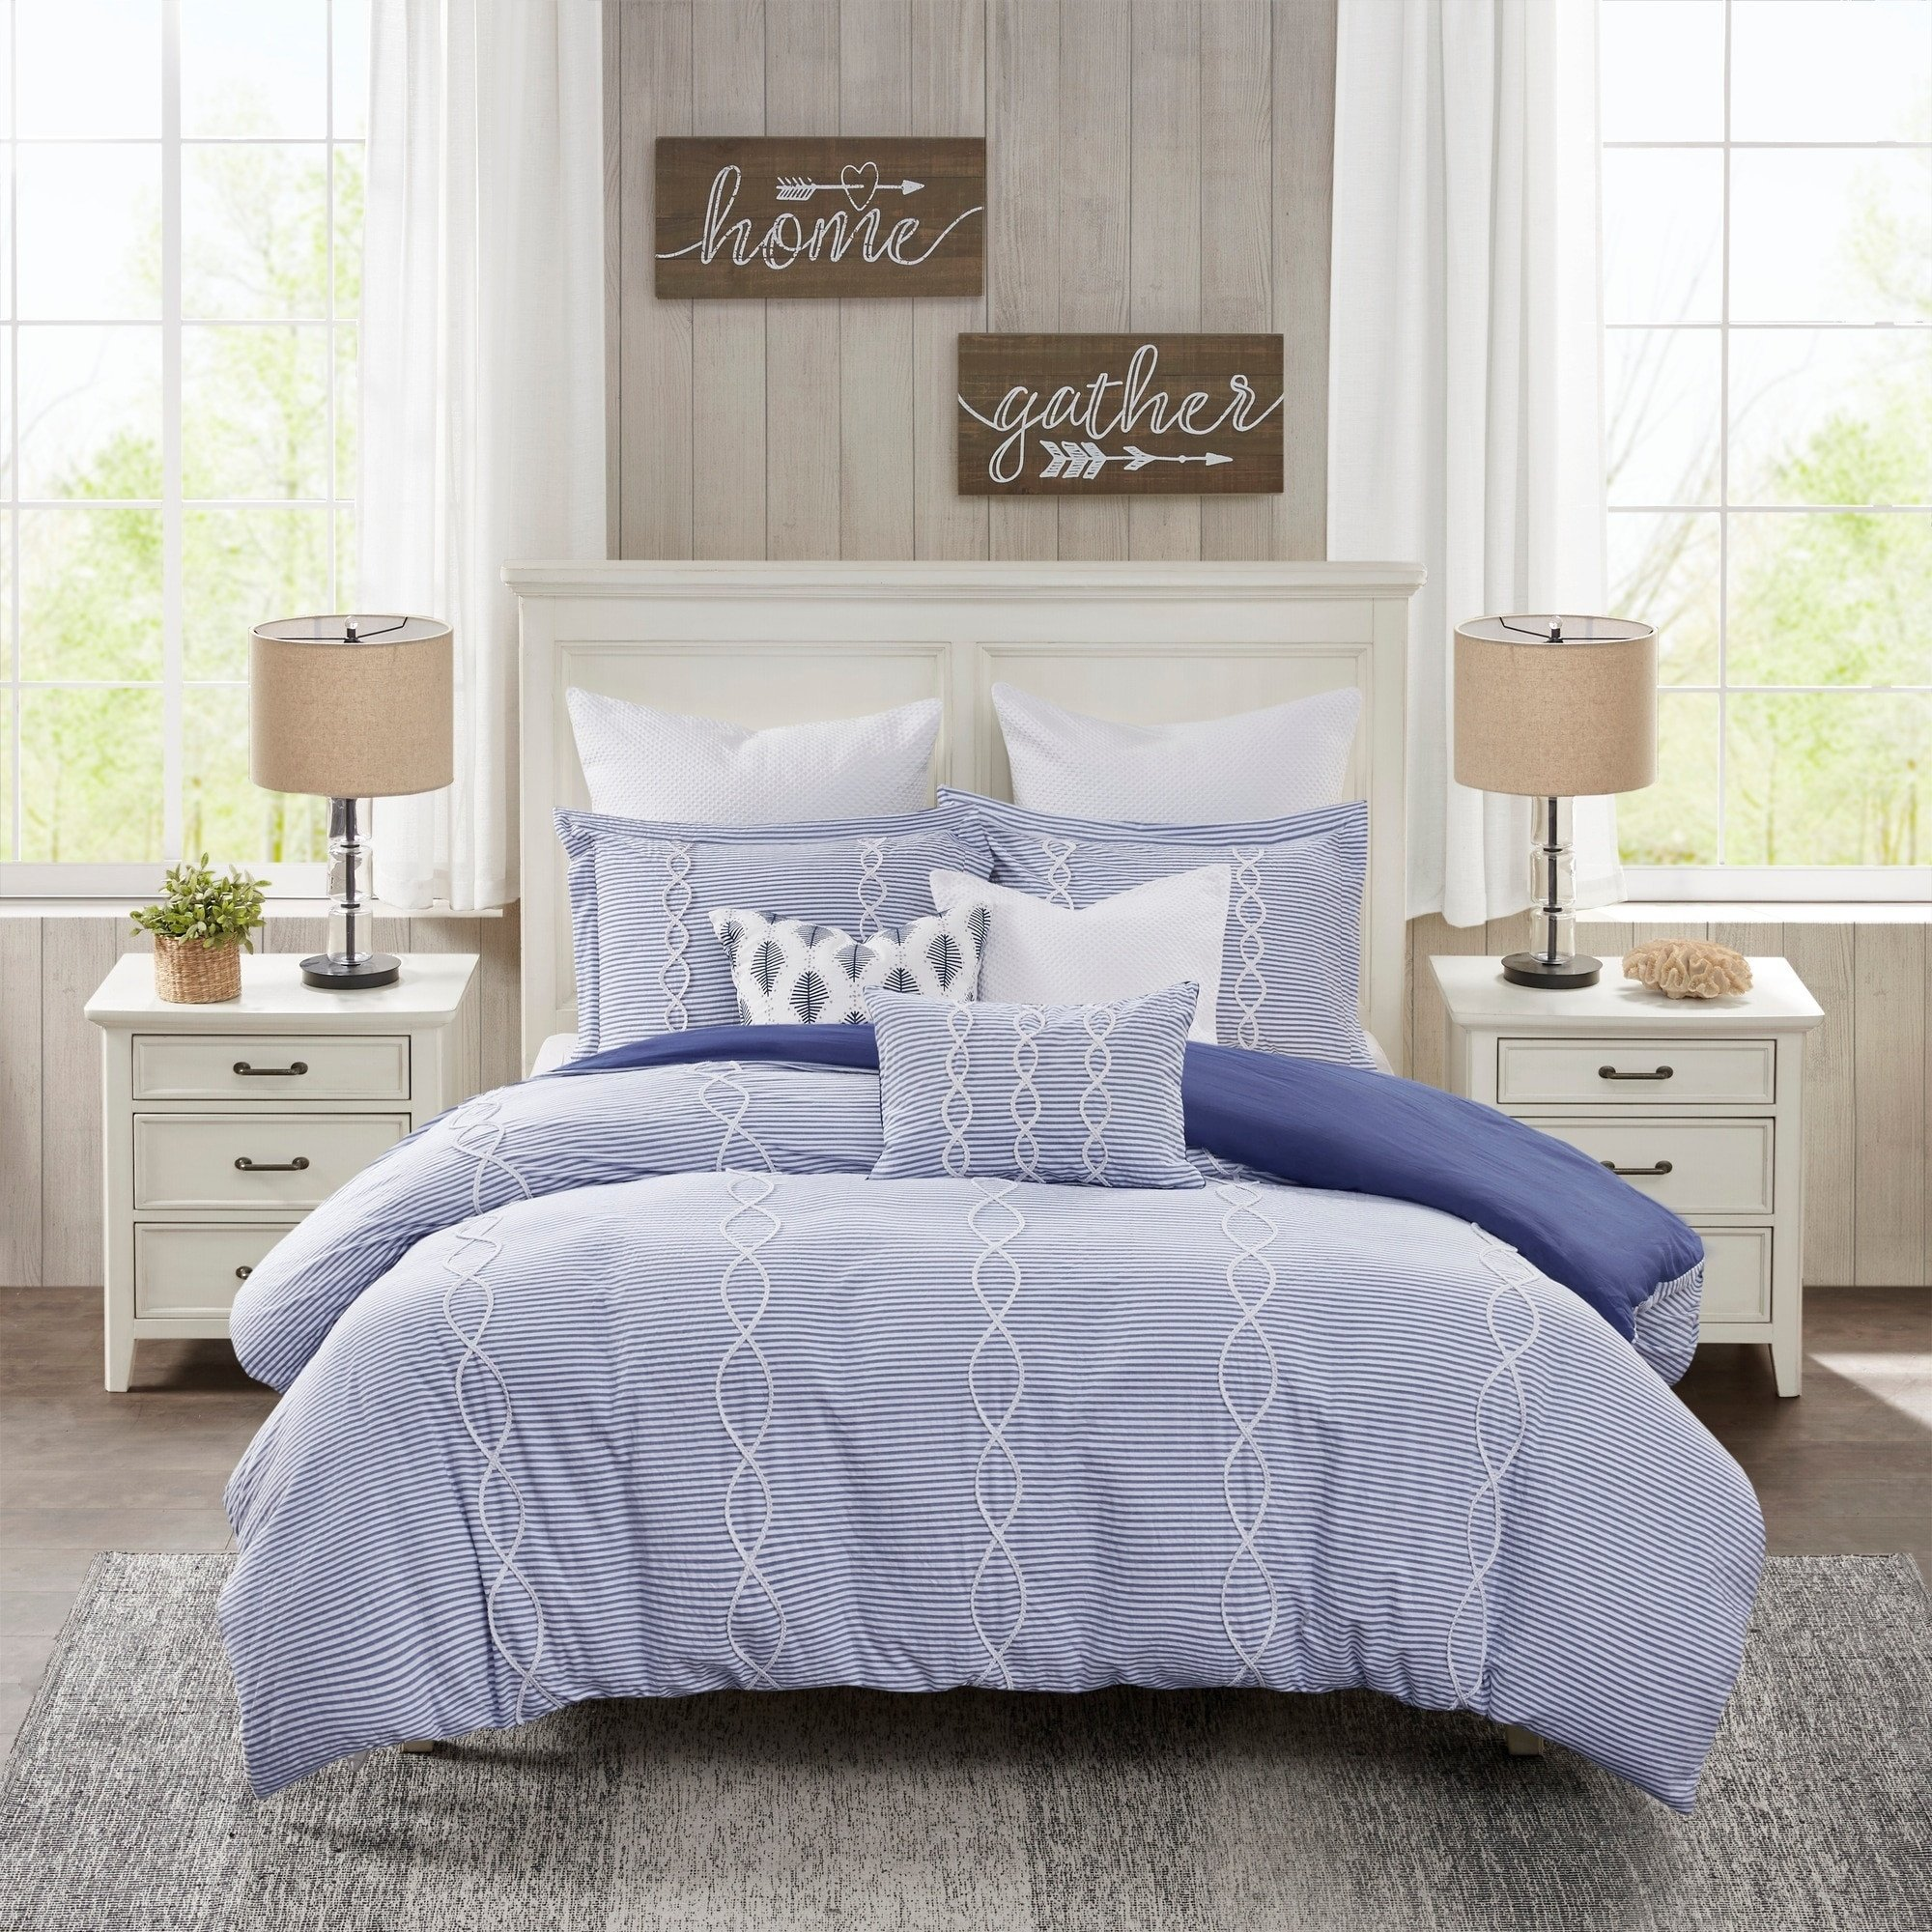 White Coastal Bedroom Furniture Fresh Madison Park Signature Coastal Farmhouse Blue forter Set